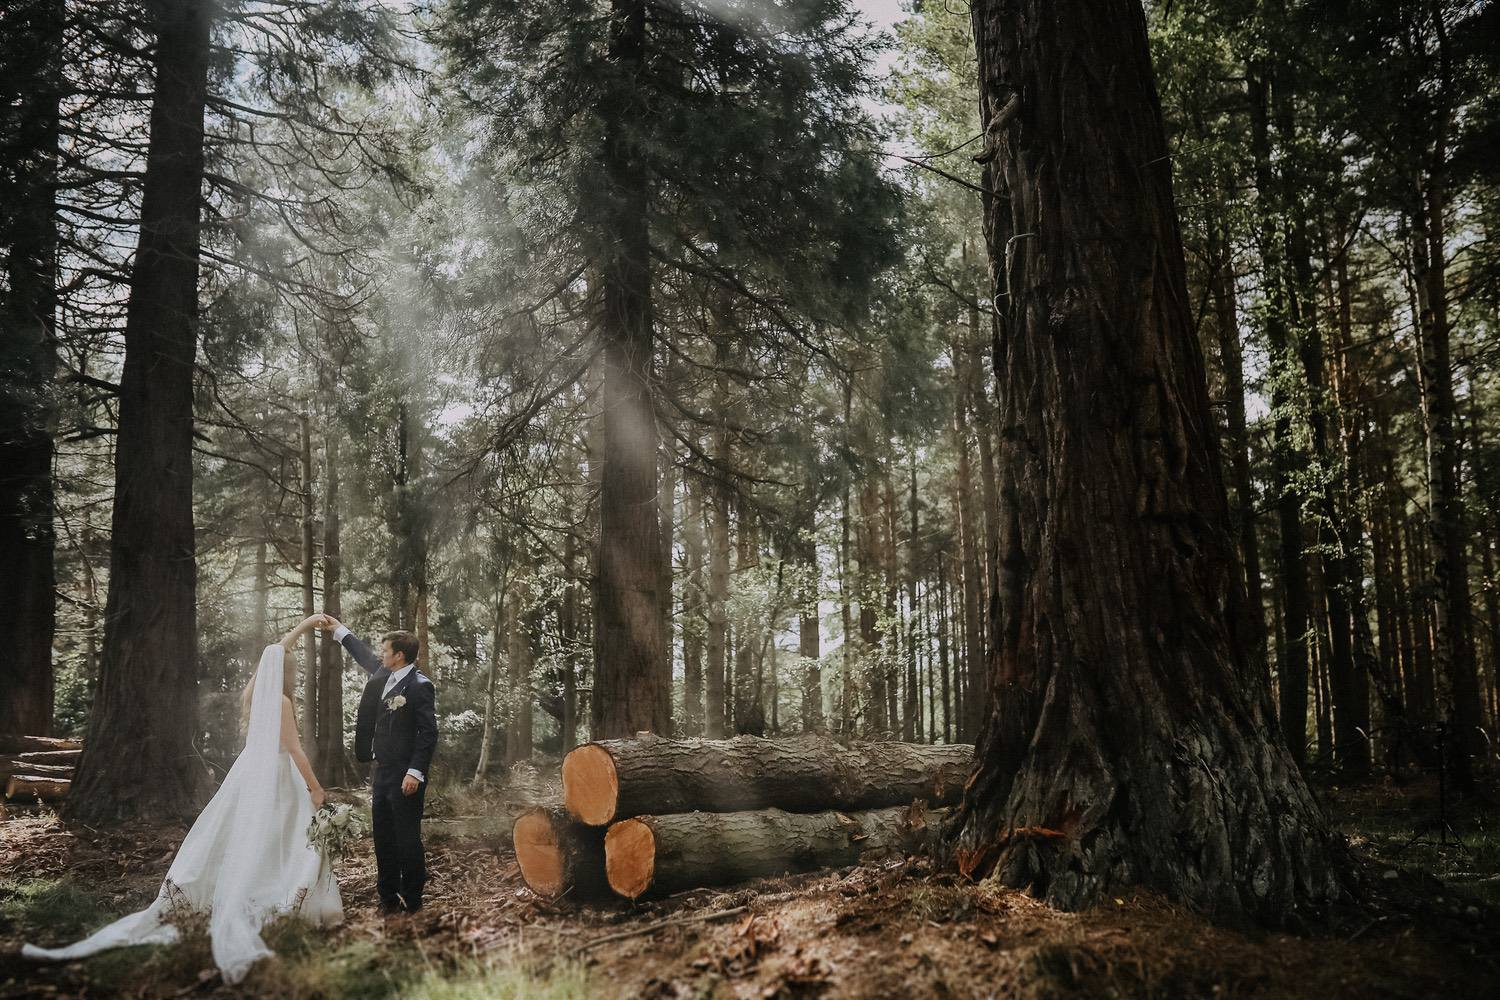 I found this spot and as the light peaked through the trees I asked Kristofer and Ashley to have a chat about their day and what happened next was magical!